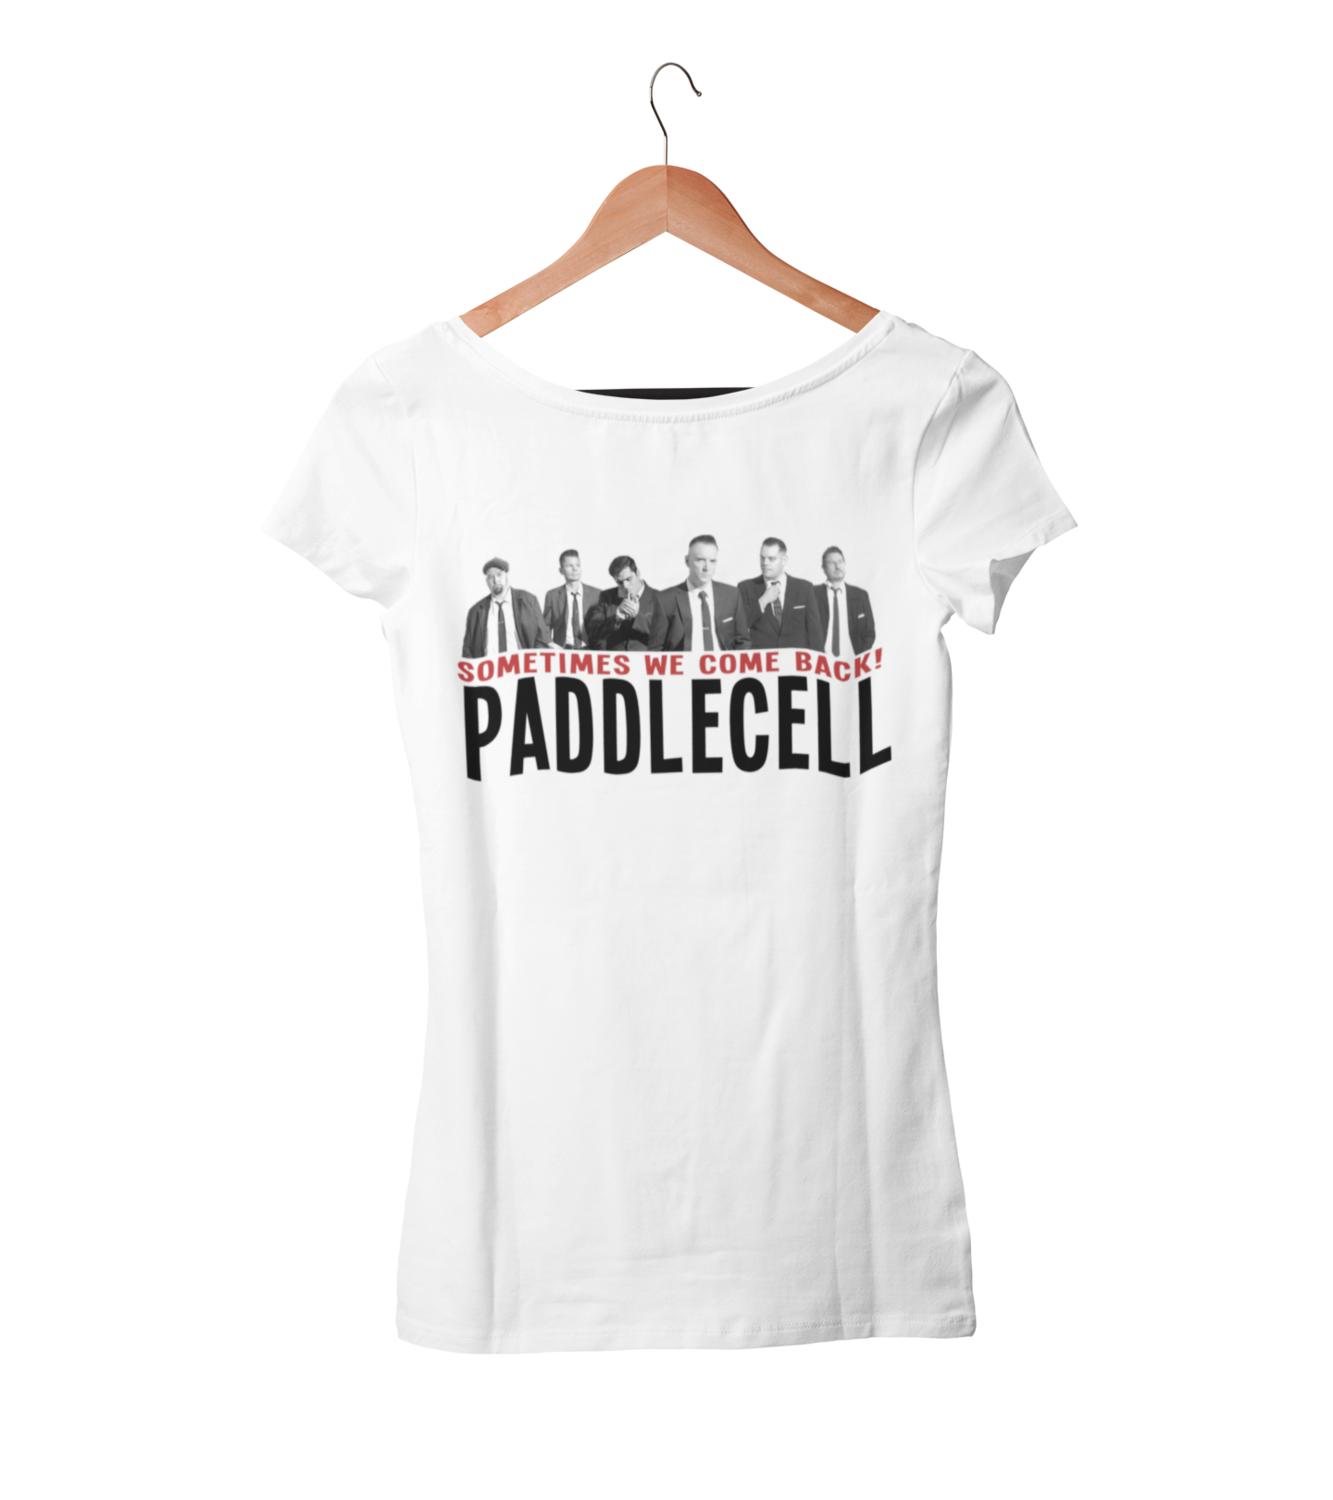 """PADDLECELL """"Sometimes we come back"""" tshirt for WOMEN"""